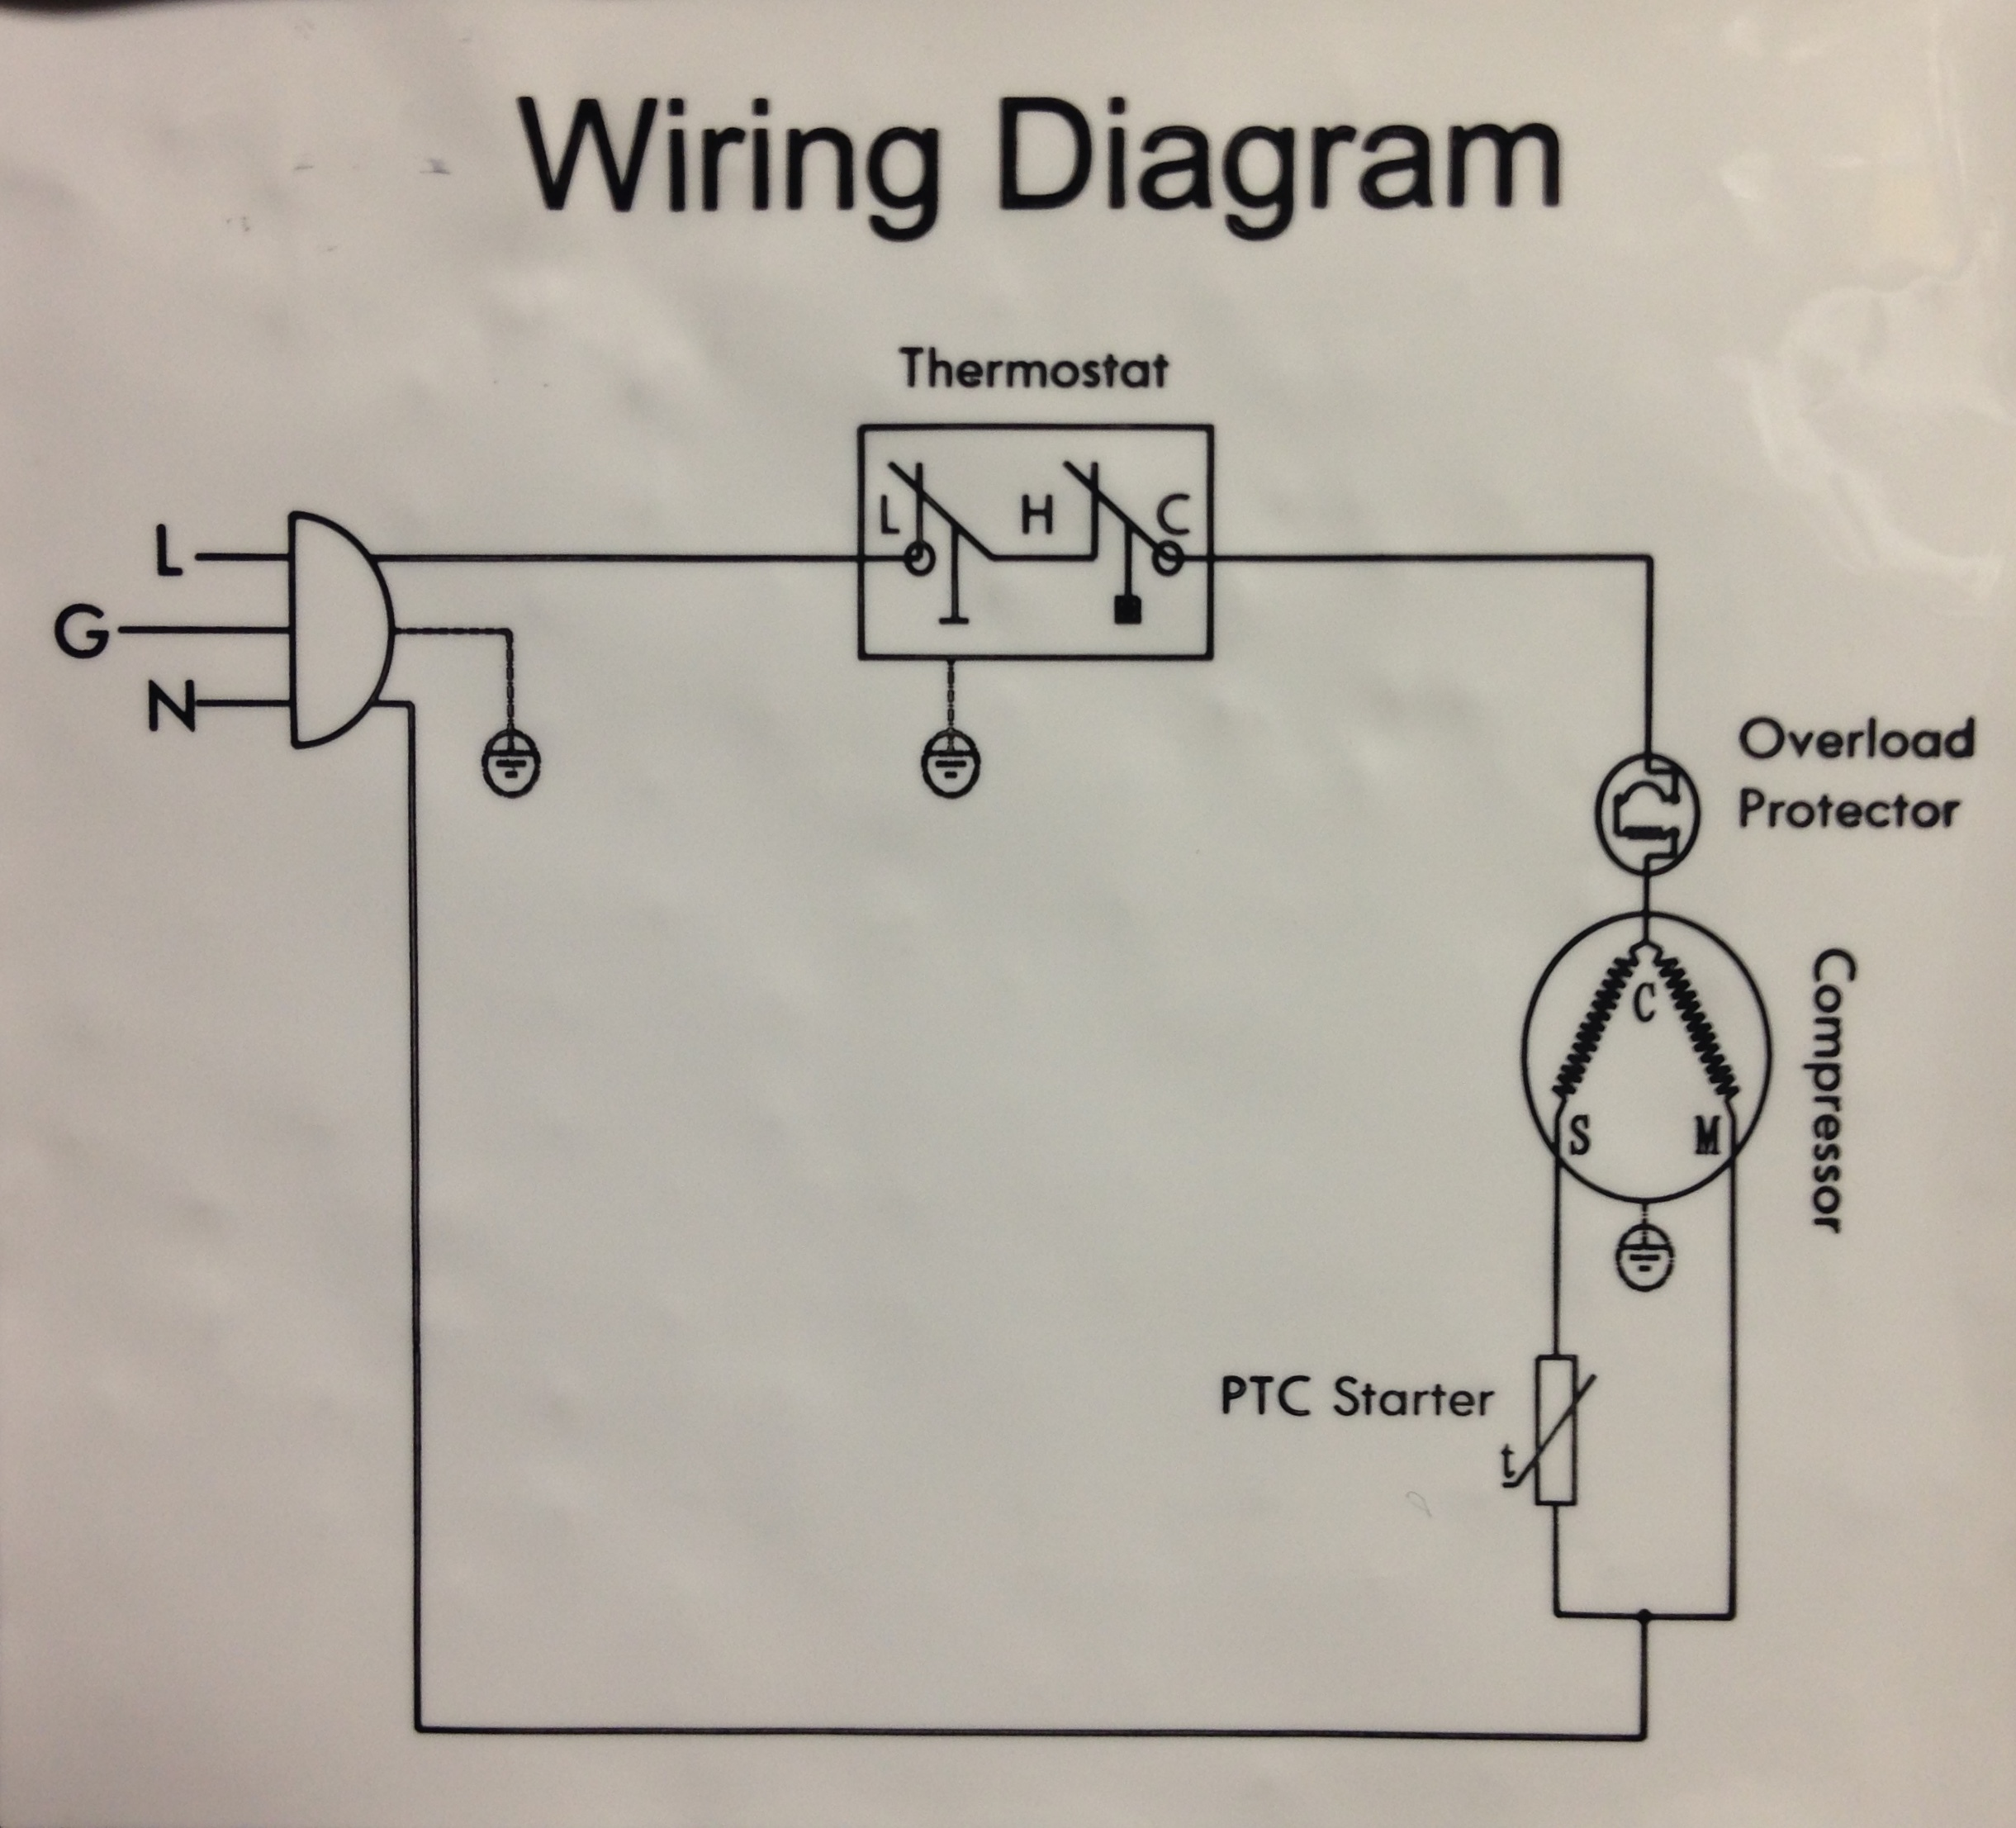 Refrigerator Wiring Diagram Pdf | Wiring Diagram on refrigerator clip art, commercial defrost timers diagrams, electrolux refrigerator wiring diagrams, refrigerator compressor relay wiring diagrams, refrigerator freezer wiring diagrams, refrigerator heater, ge refrigerator diagrams, refrigerator drain tube, samsung refrigerator schematic diagrams, defrost timer ladder diagrams, refrigerator racks, general electric refrigerator wiring diagrams, refrigerator wiring schematic,